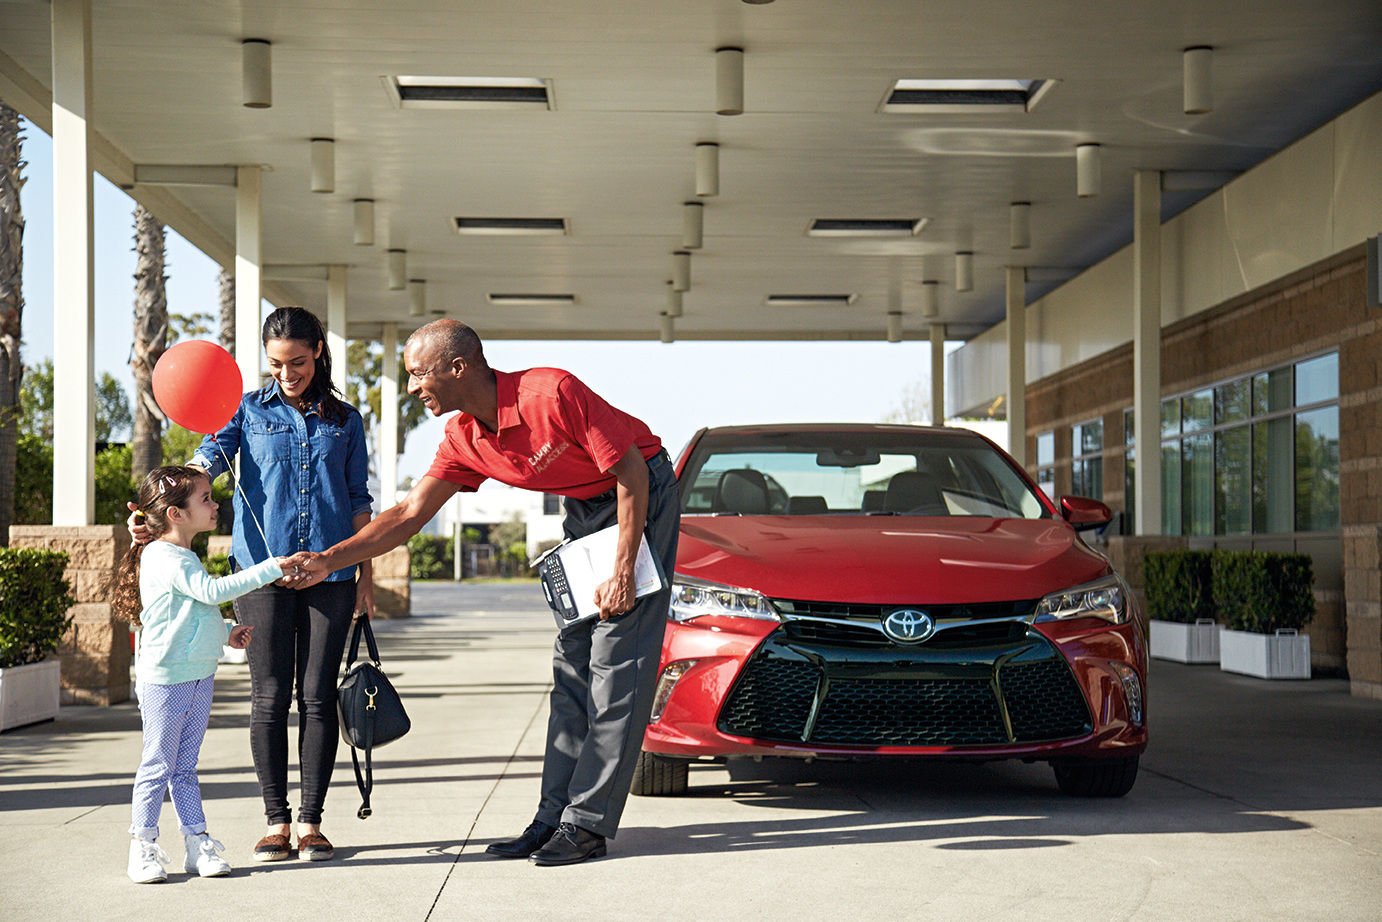 Personalized Service - Additionally, by creating a branded uniform shirt, representatives were easily recognized by the customer. These folks were not salespeople, but concierges who were trained specifically for the Camry All-Access program.